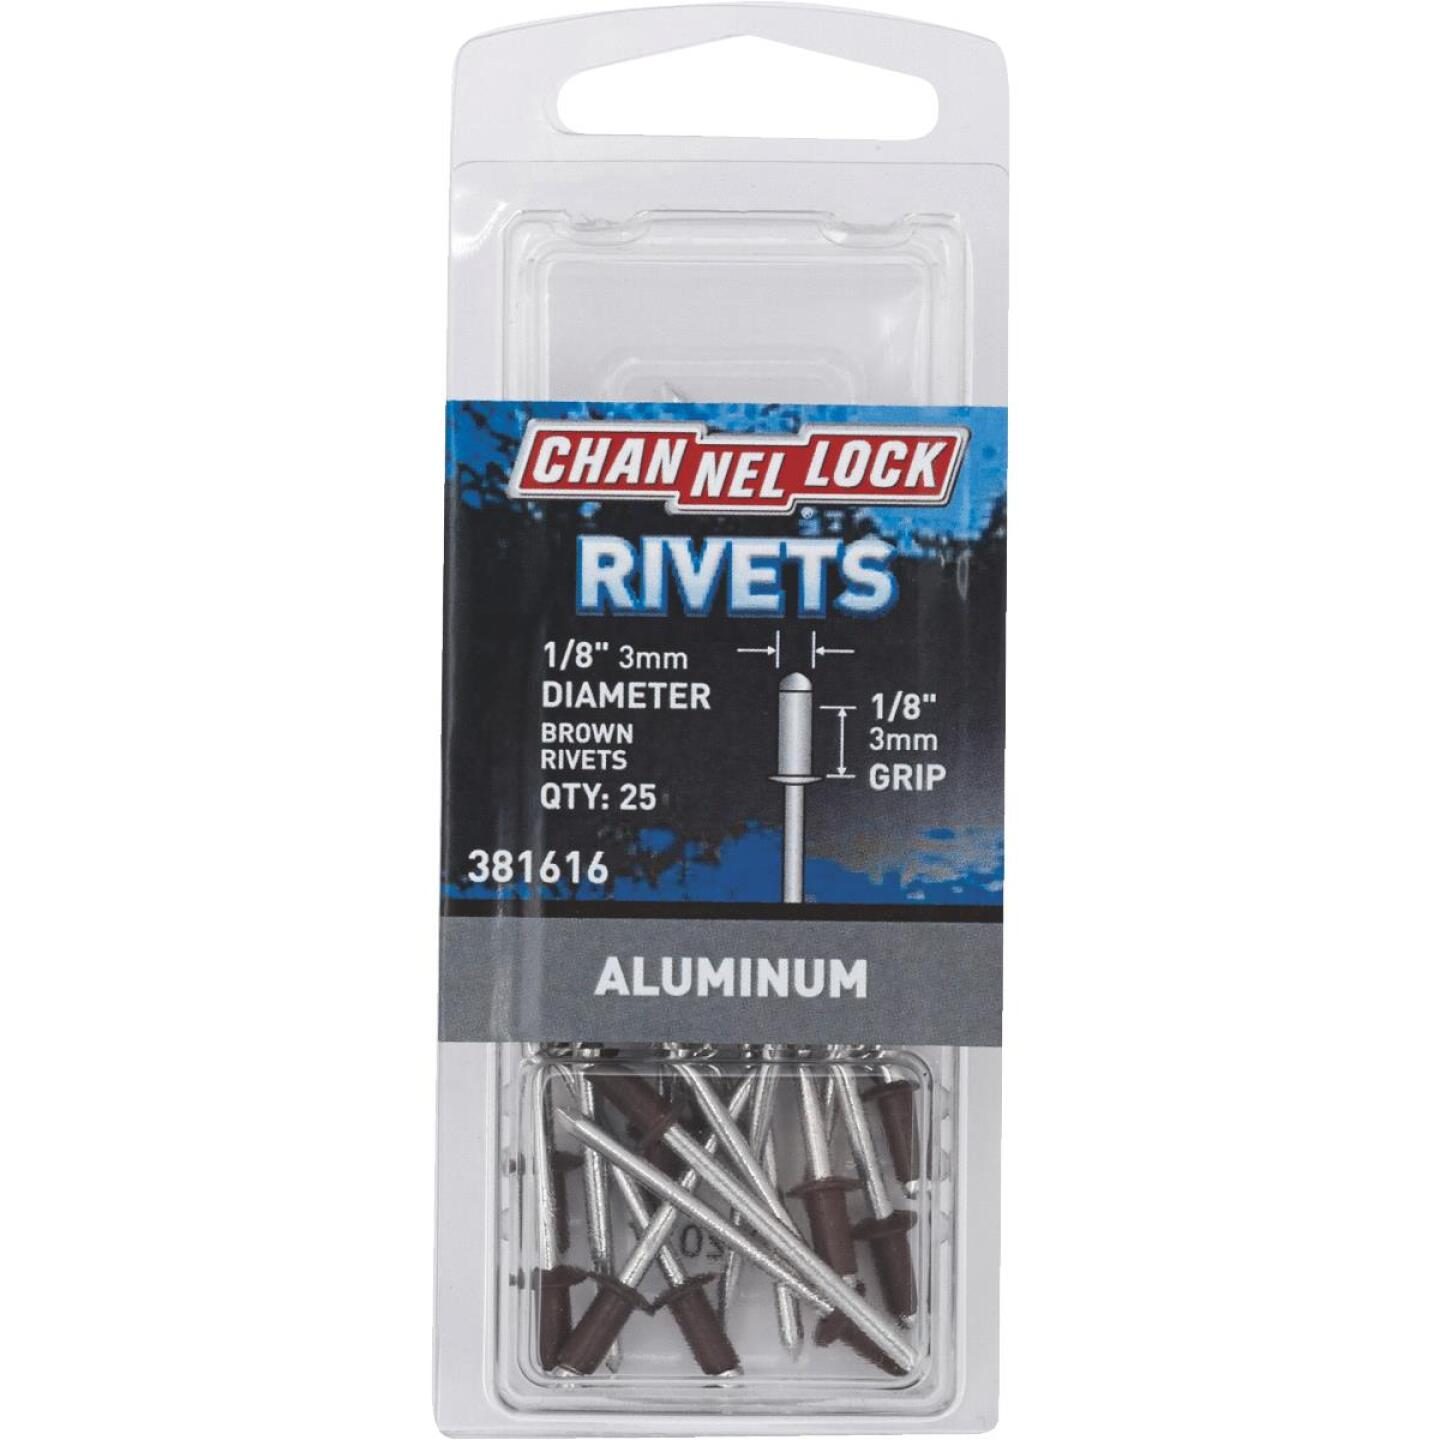 Channellock 1/8 In. Dia. x 1/8 In. Grip Aluminum POP Rivet (25-Pack) Image 1